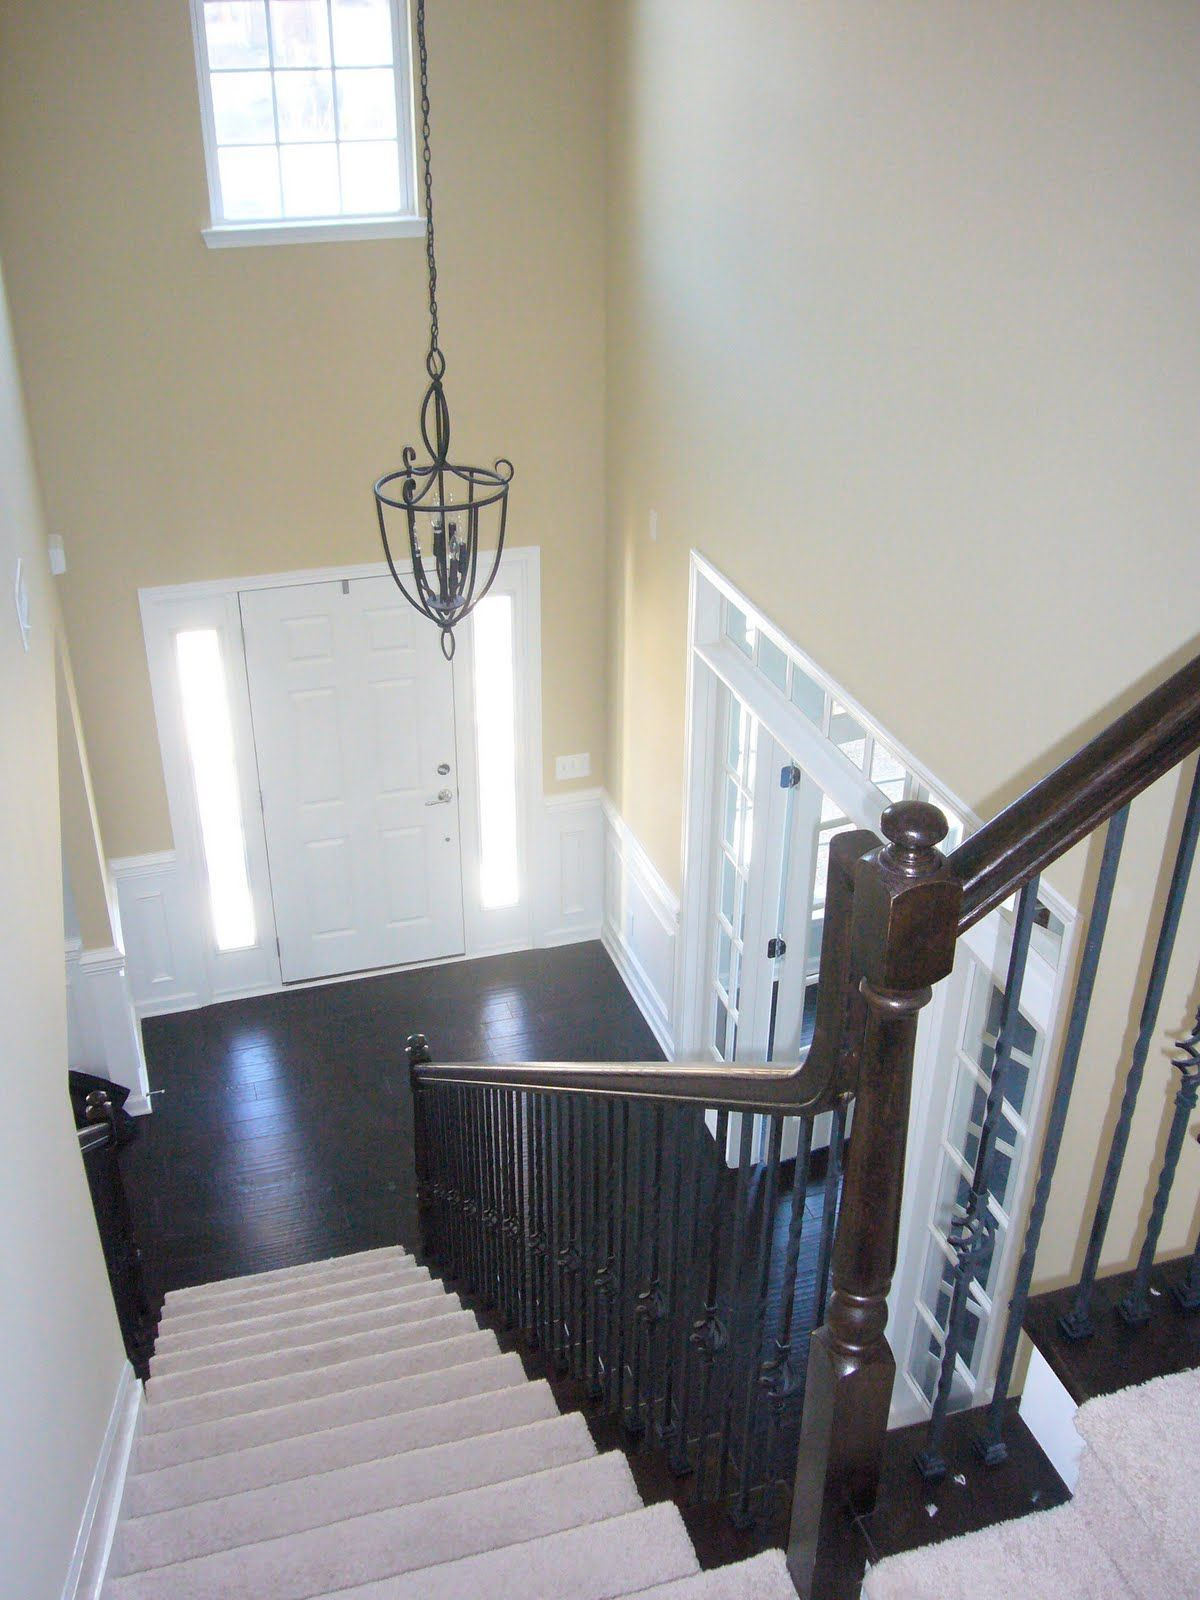 Paint Ideas For Entryway what color should i paint my foyer? | decoratingdonna